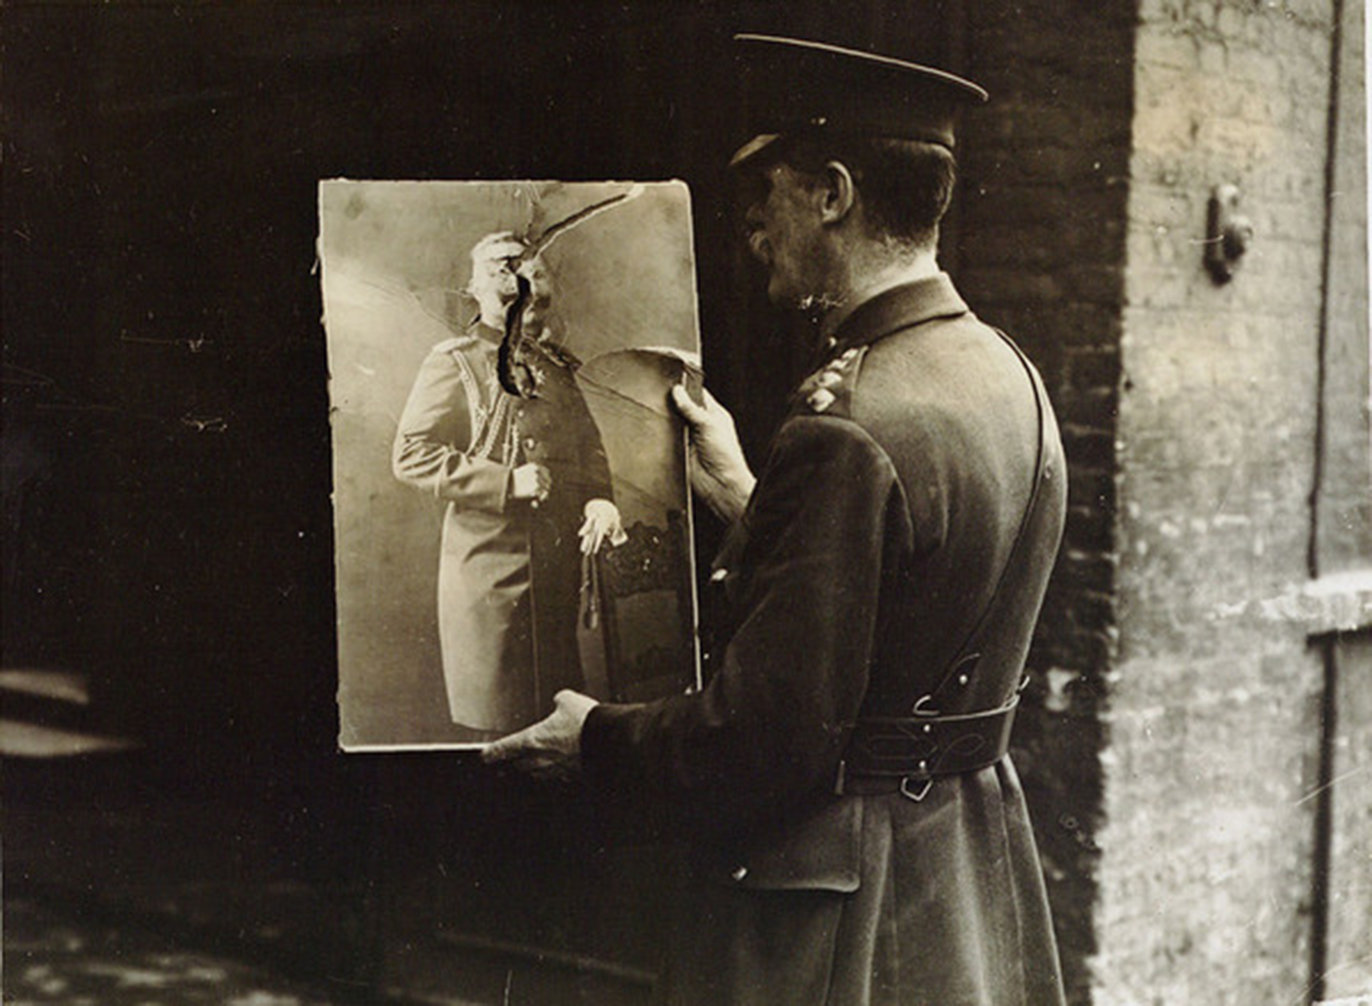 Ending or new beginning? British soldier with a destroyed portrait of the German Emperor, 1918, 1918, Istituto centrale per il catalogo unico, In Copyright